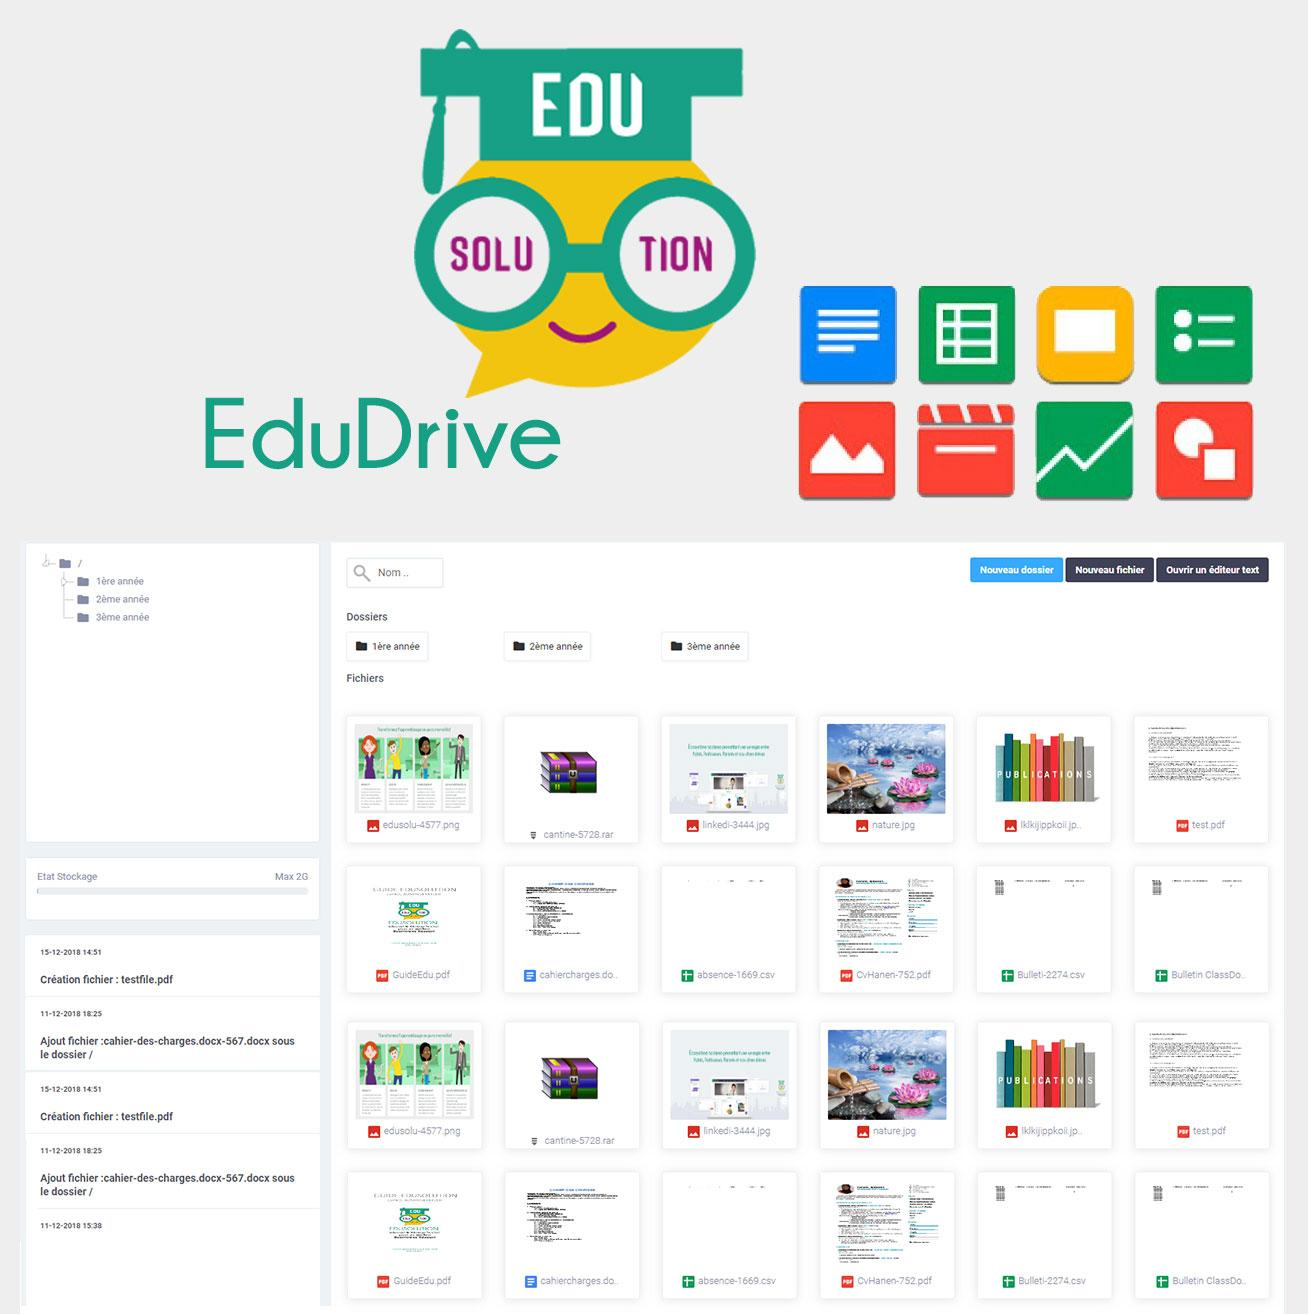 edu-drive-edusolution.jpg